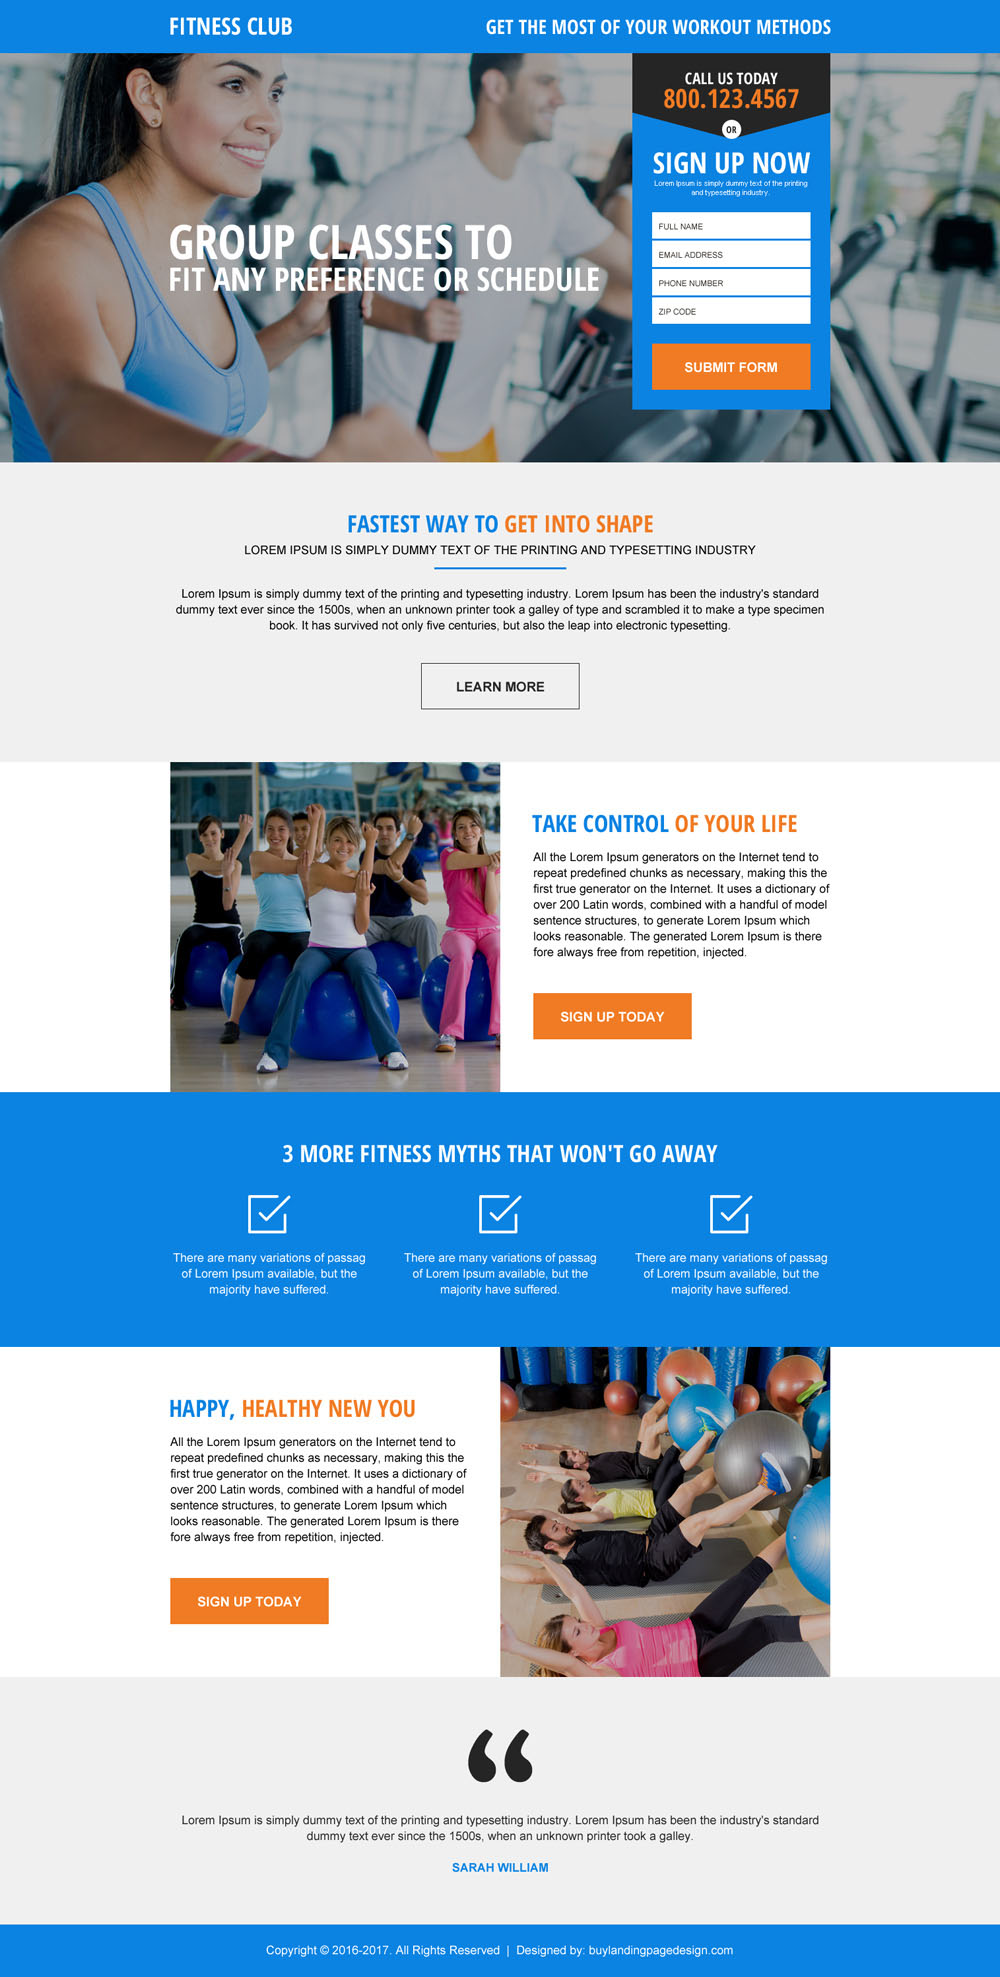 fitness-club-sign-up-lead-generation-high-converting-landing-page-design-001